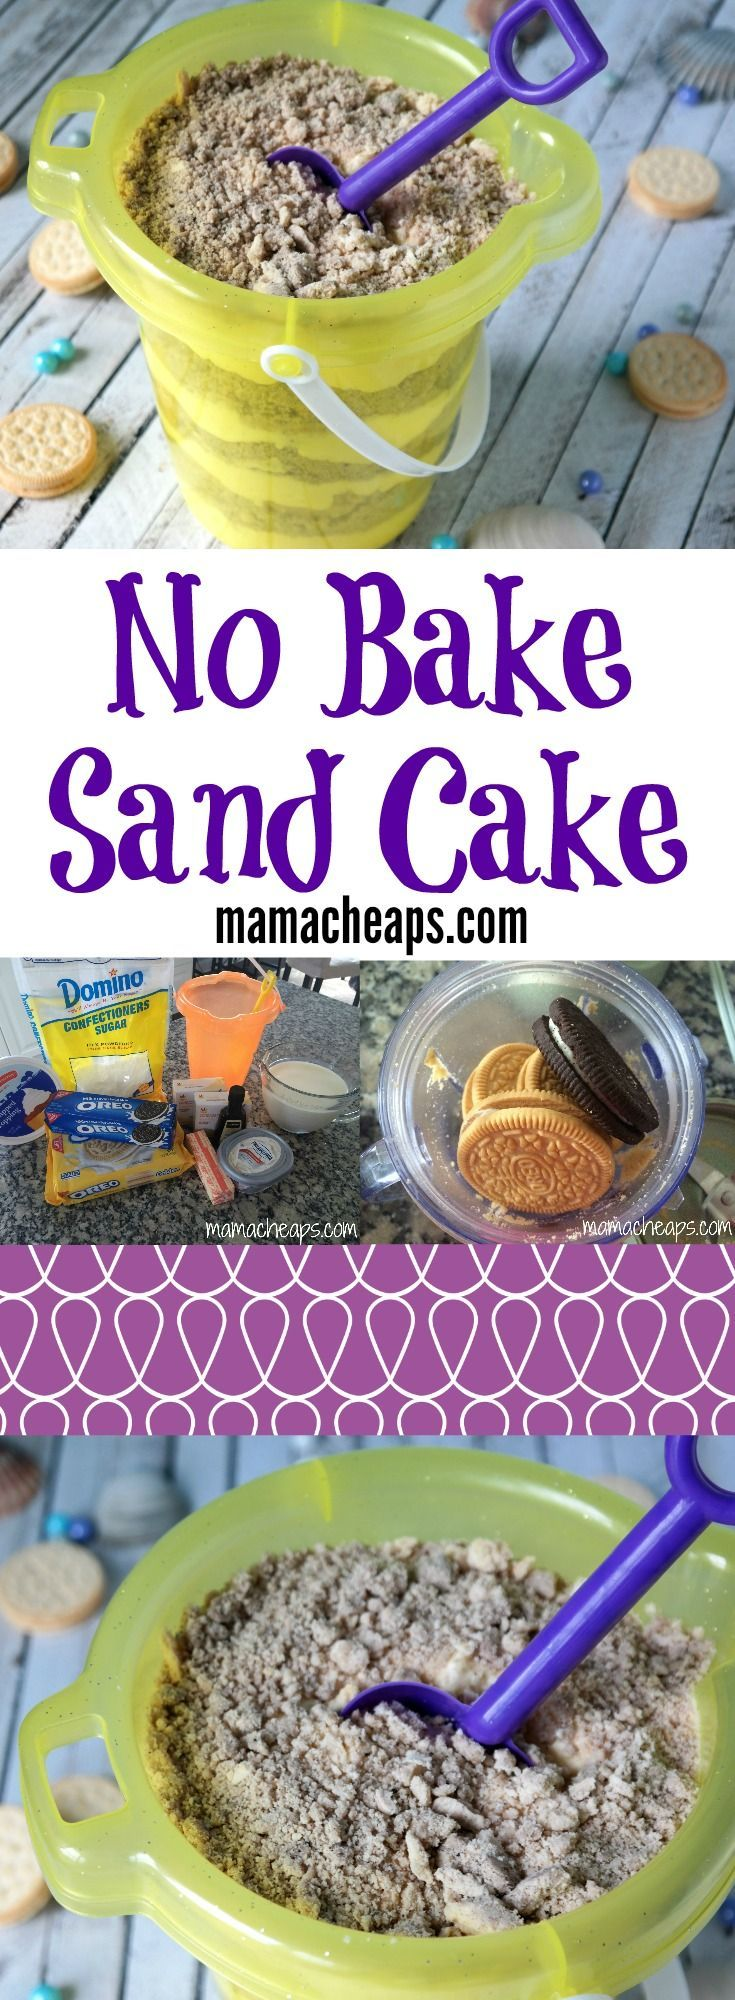 No Bake Sand Cake - simple, tasty and OH SO CUTE!